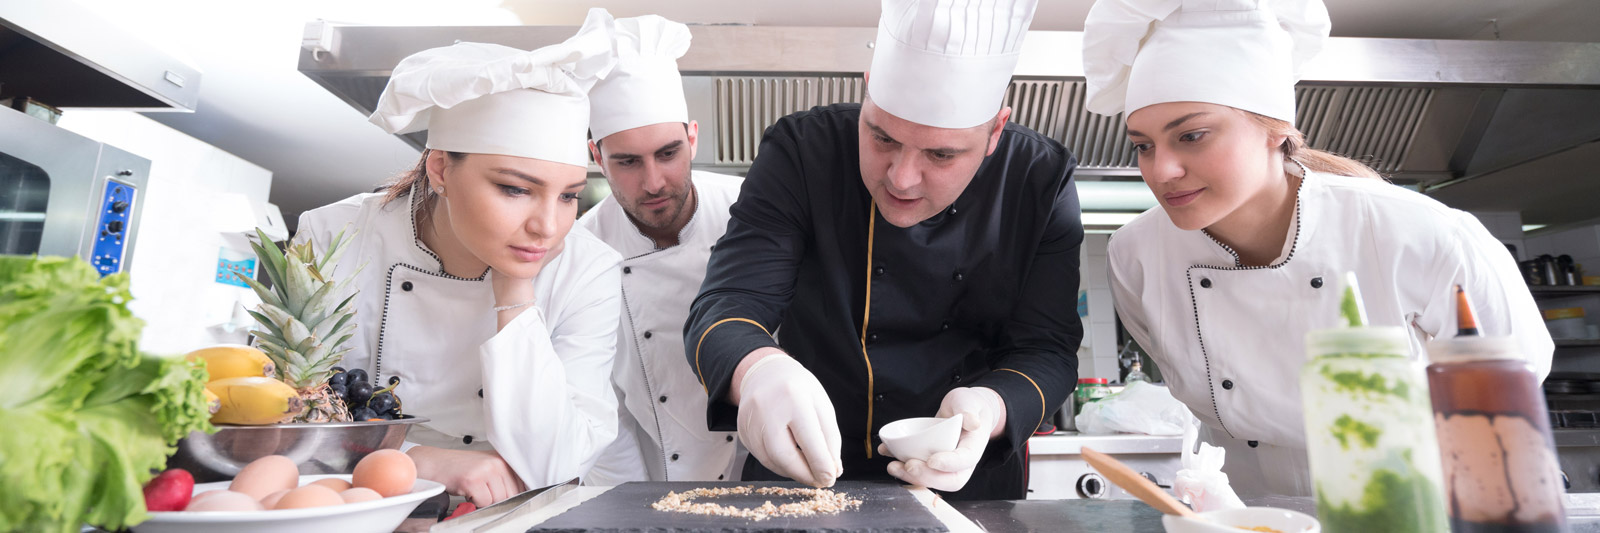 a group of commis chef apprentices watching a chef prepare a dish